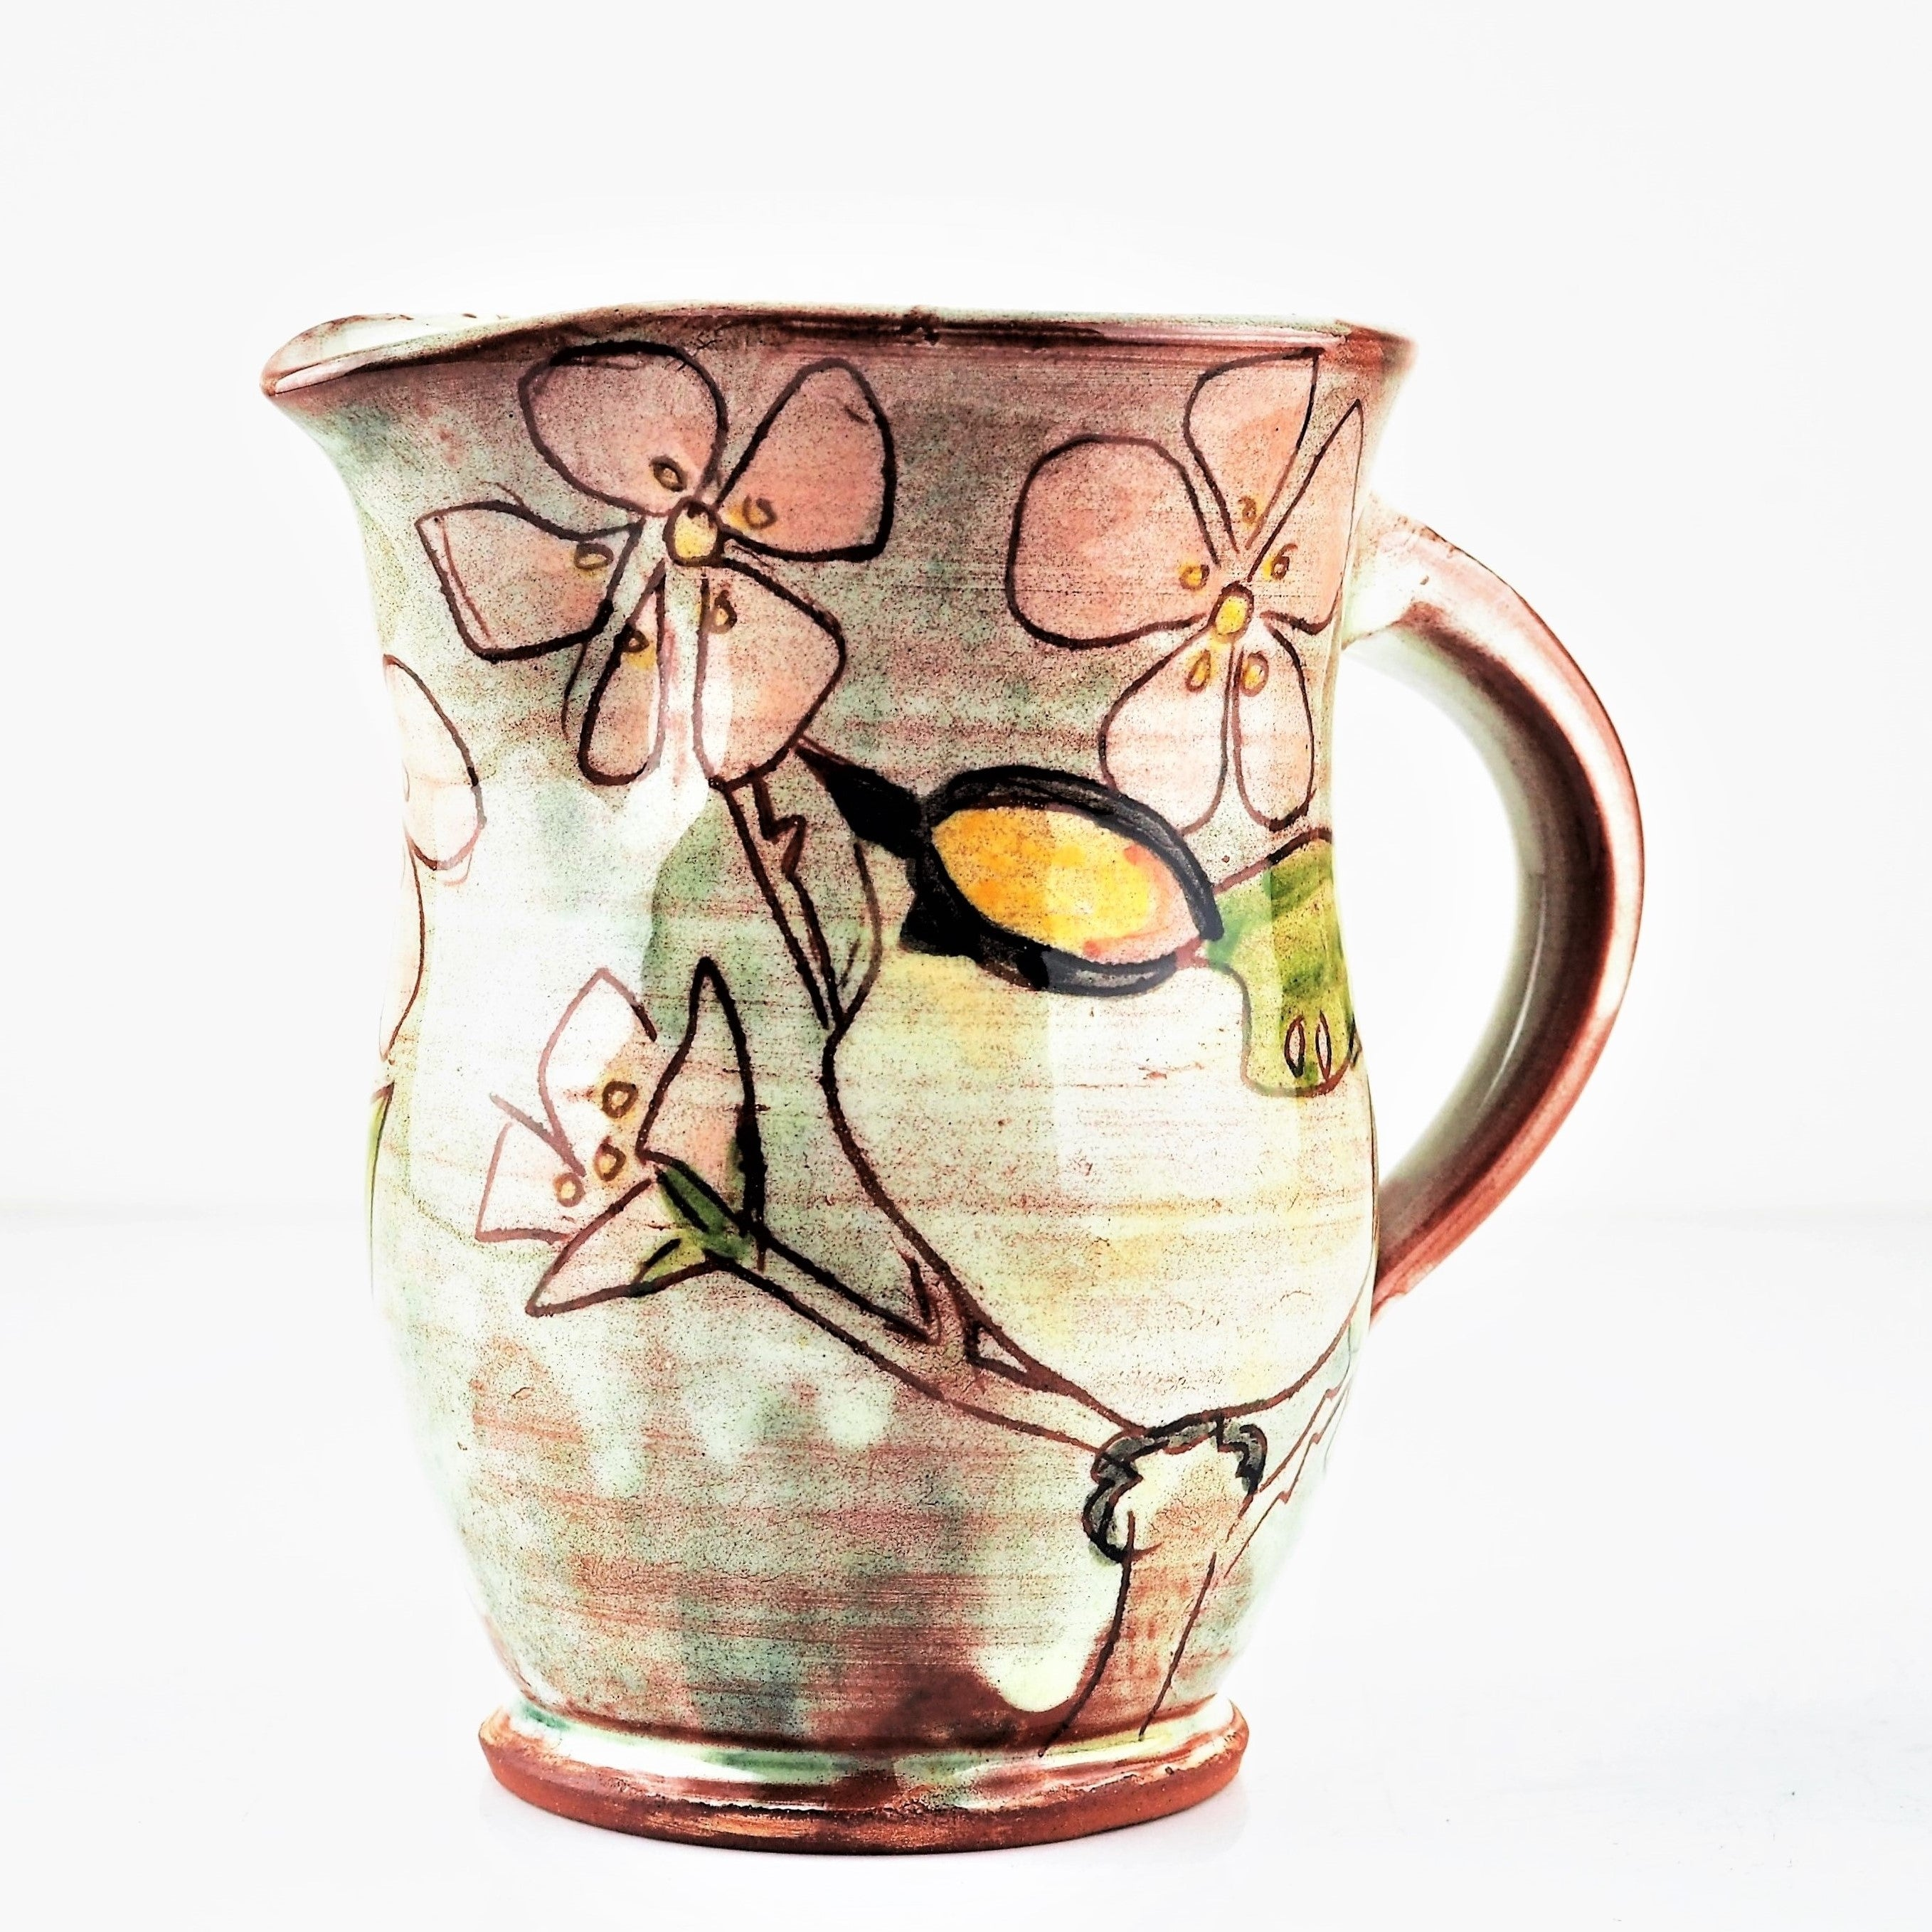 Hale, Jennie – Decorated Milk Jug | Jennie Hale | Primavera Gallery